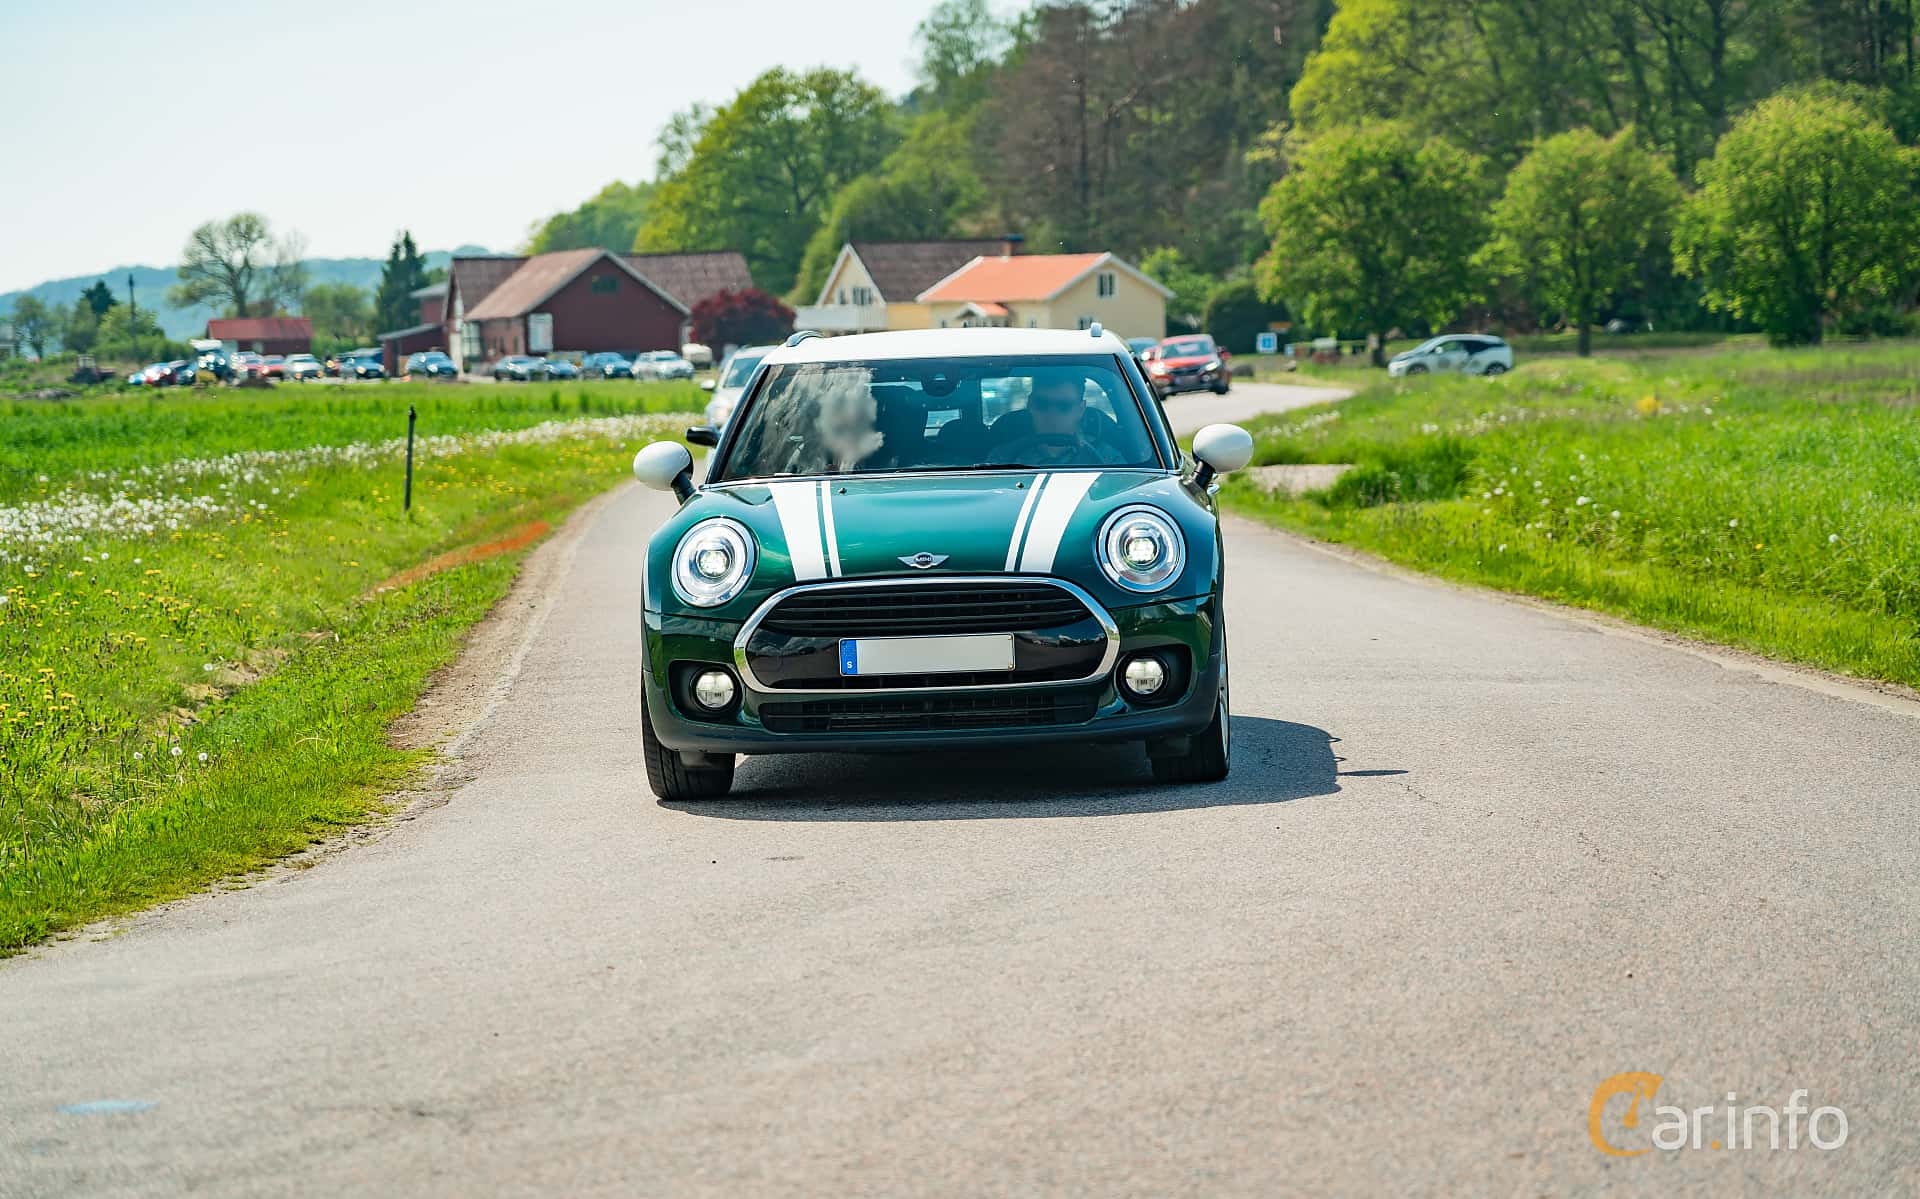 3 Images Of Mini Cooper Clubman Manual 136hp 2016 By Marcusliedholm